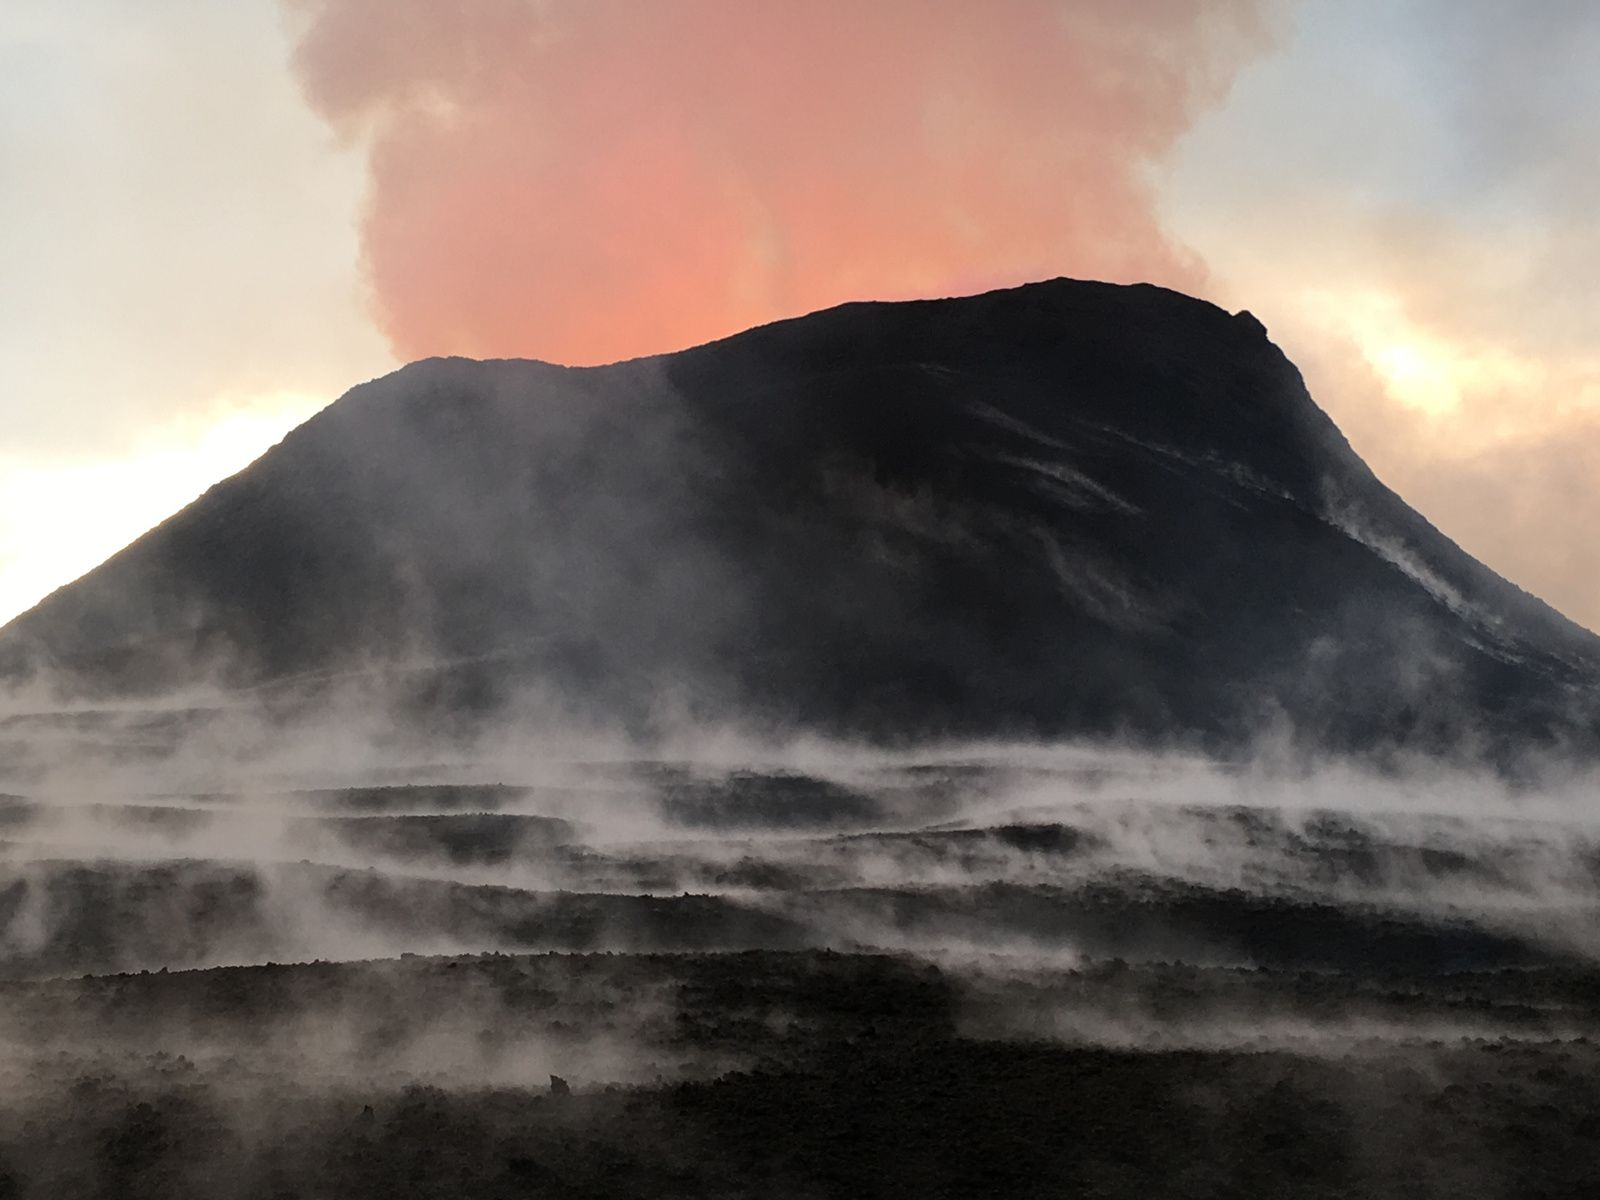 Kilauea East rift zone - the spatter cone and tephra is 51 m high at its highest point - The steam in the foreground is the result of heavy morning rain falling on warm (not hot) tephra (lava fragments). - HVO-USGS photo 16.06.2018